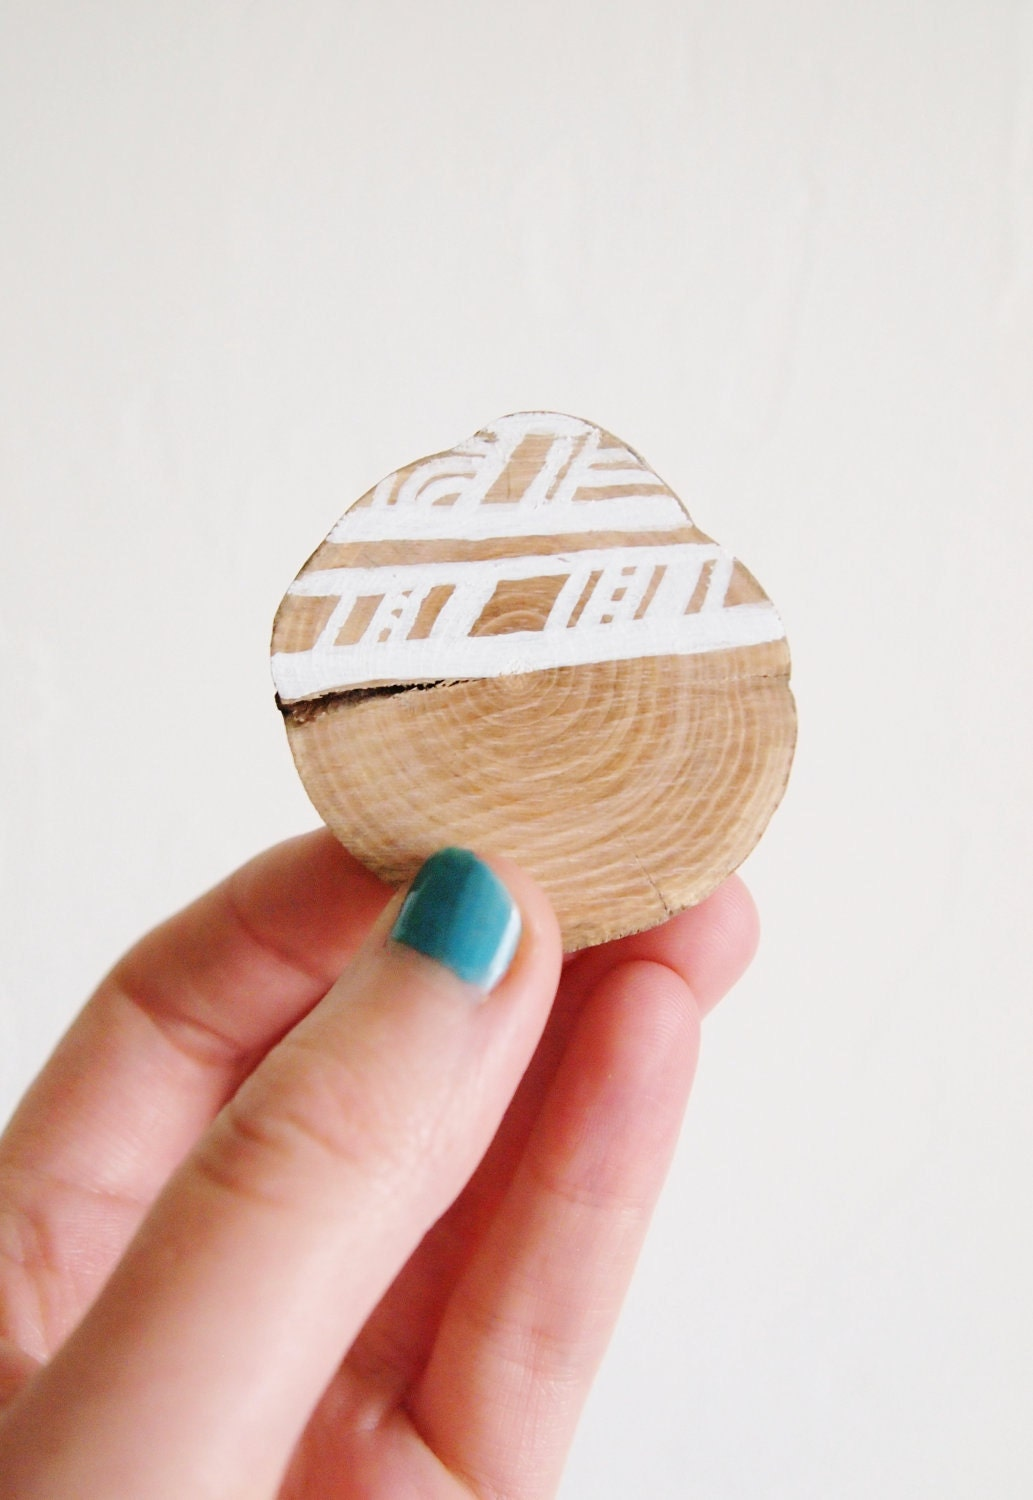 White Wooden Brooch - Hand Drawn Geometry - Gx2homegrown